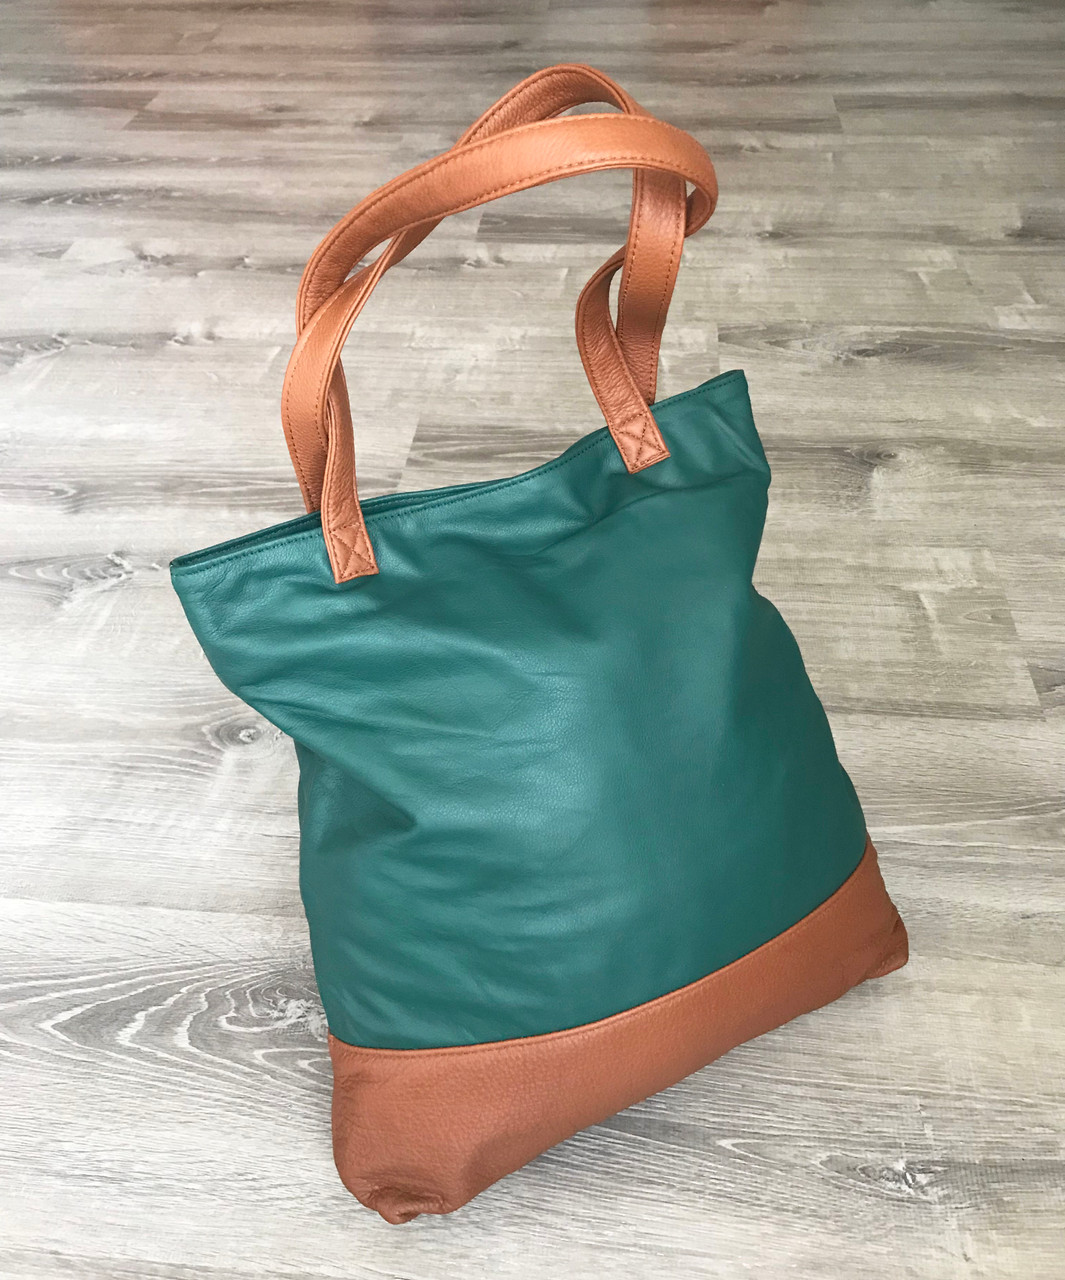 Leather Tote Bag ladies handcrafted leather carryall bag womens shoulder tote rustic Leather purse gifts for her